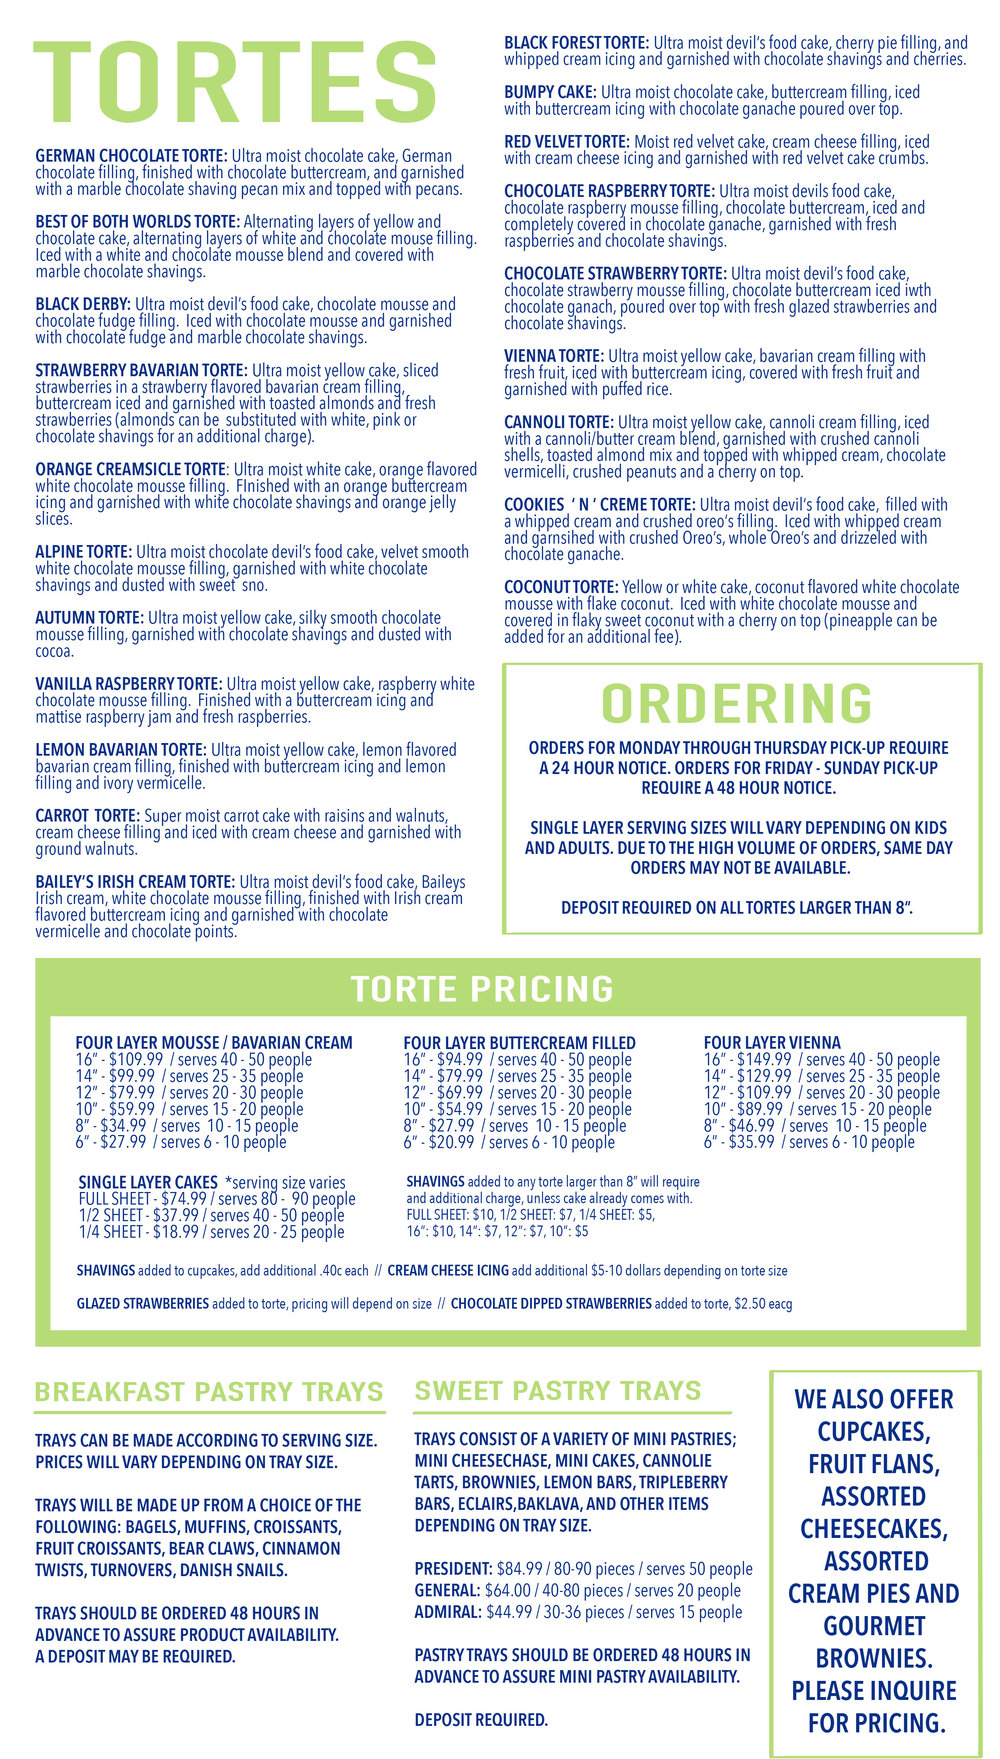 MARKET FRESH BAKERY MENU.jpg